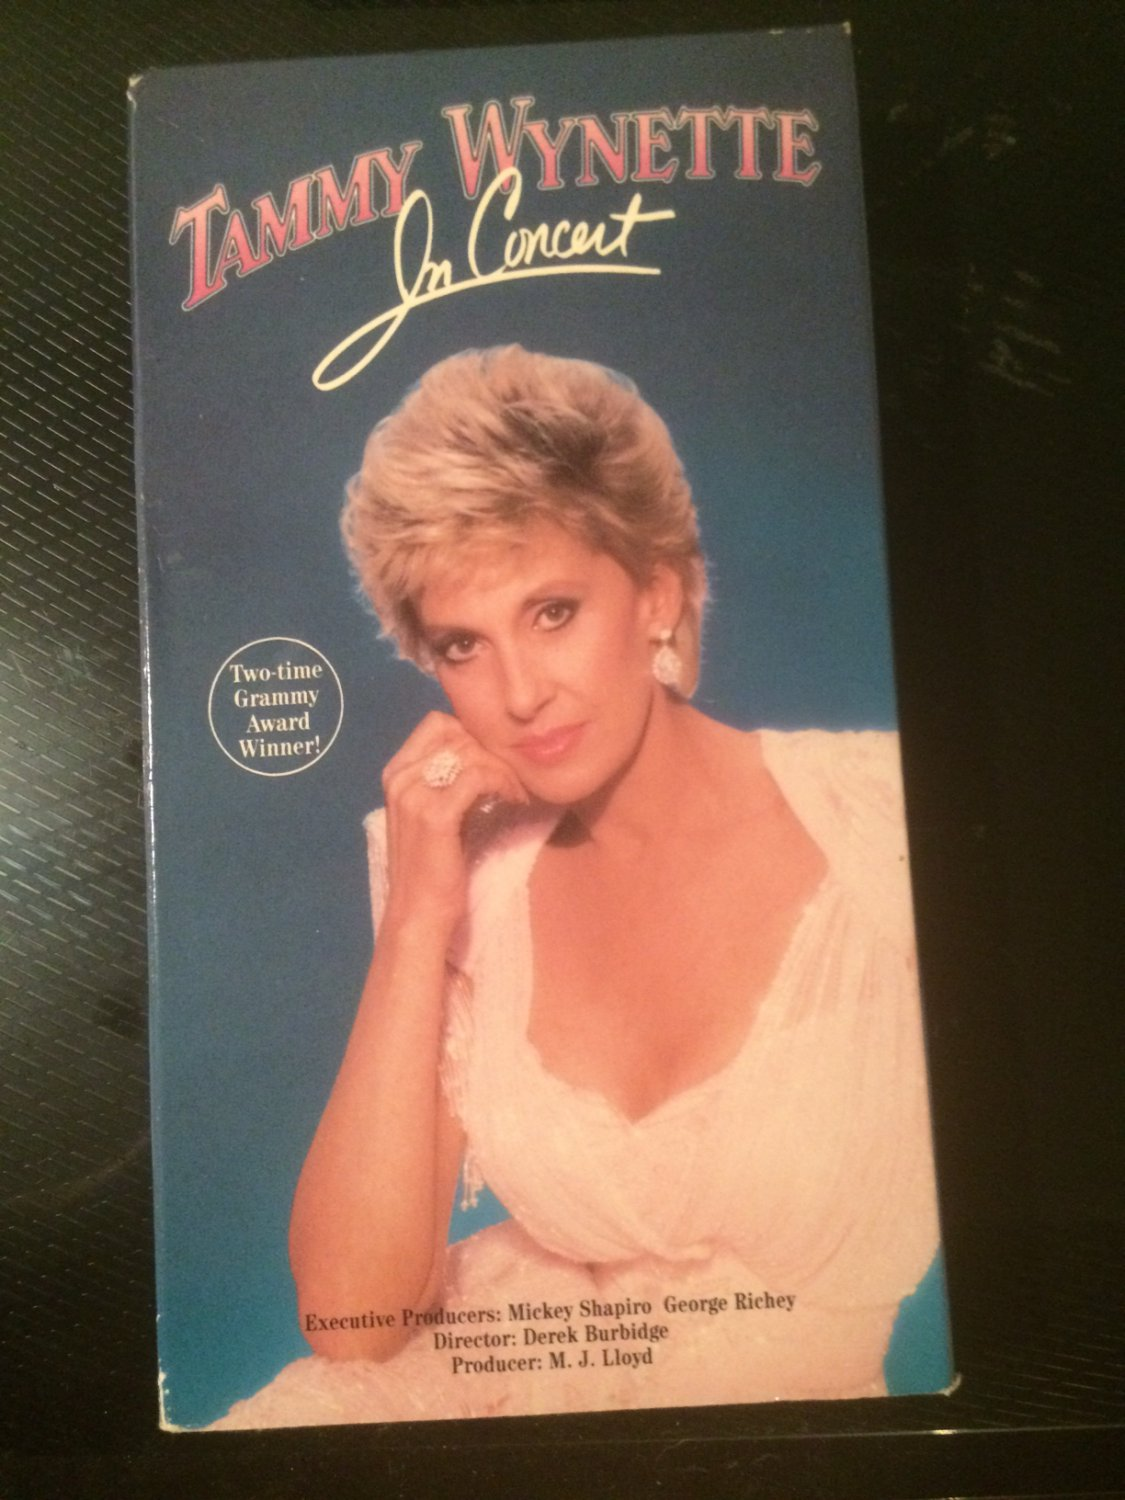 Tammy Wynette In Concert - VHS - Used - NOT ON DVD